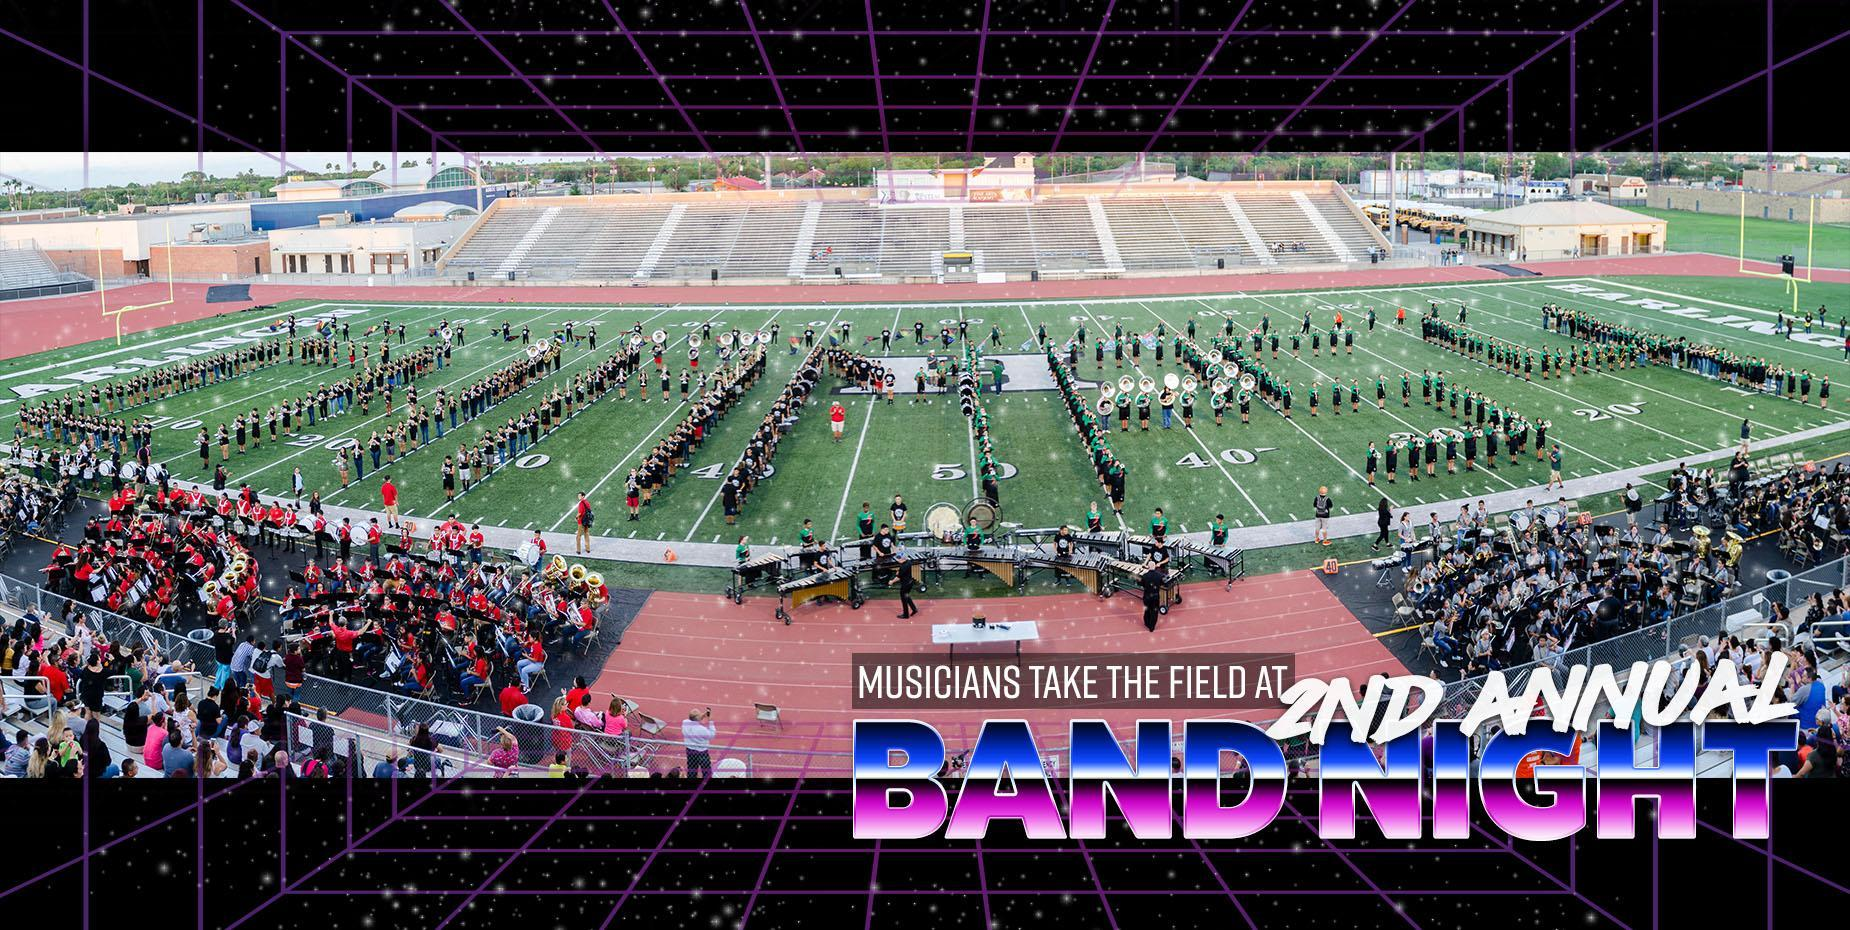 Musicians take the field at second annual Band Night